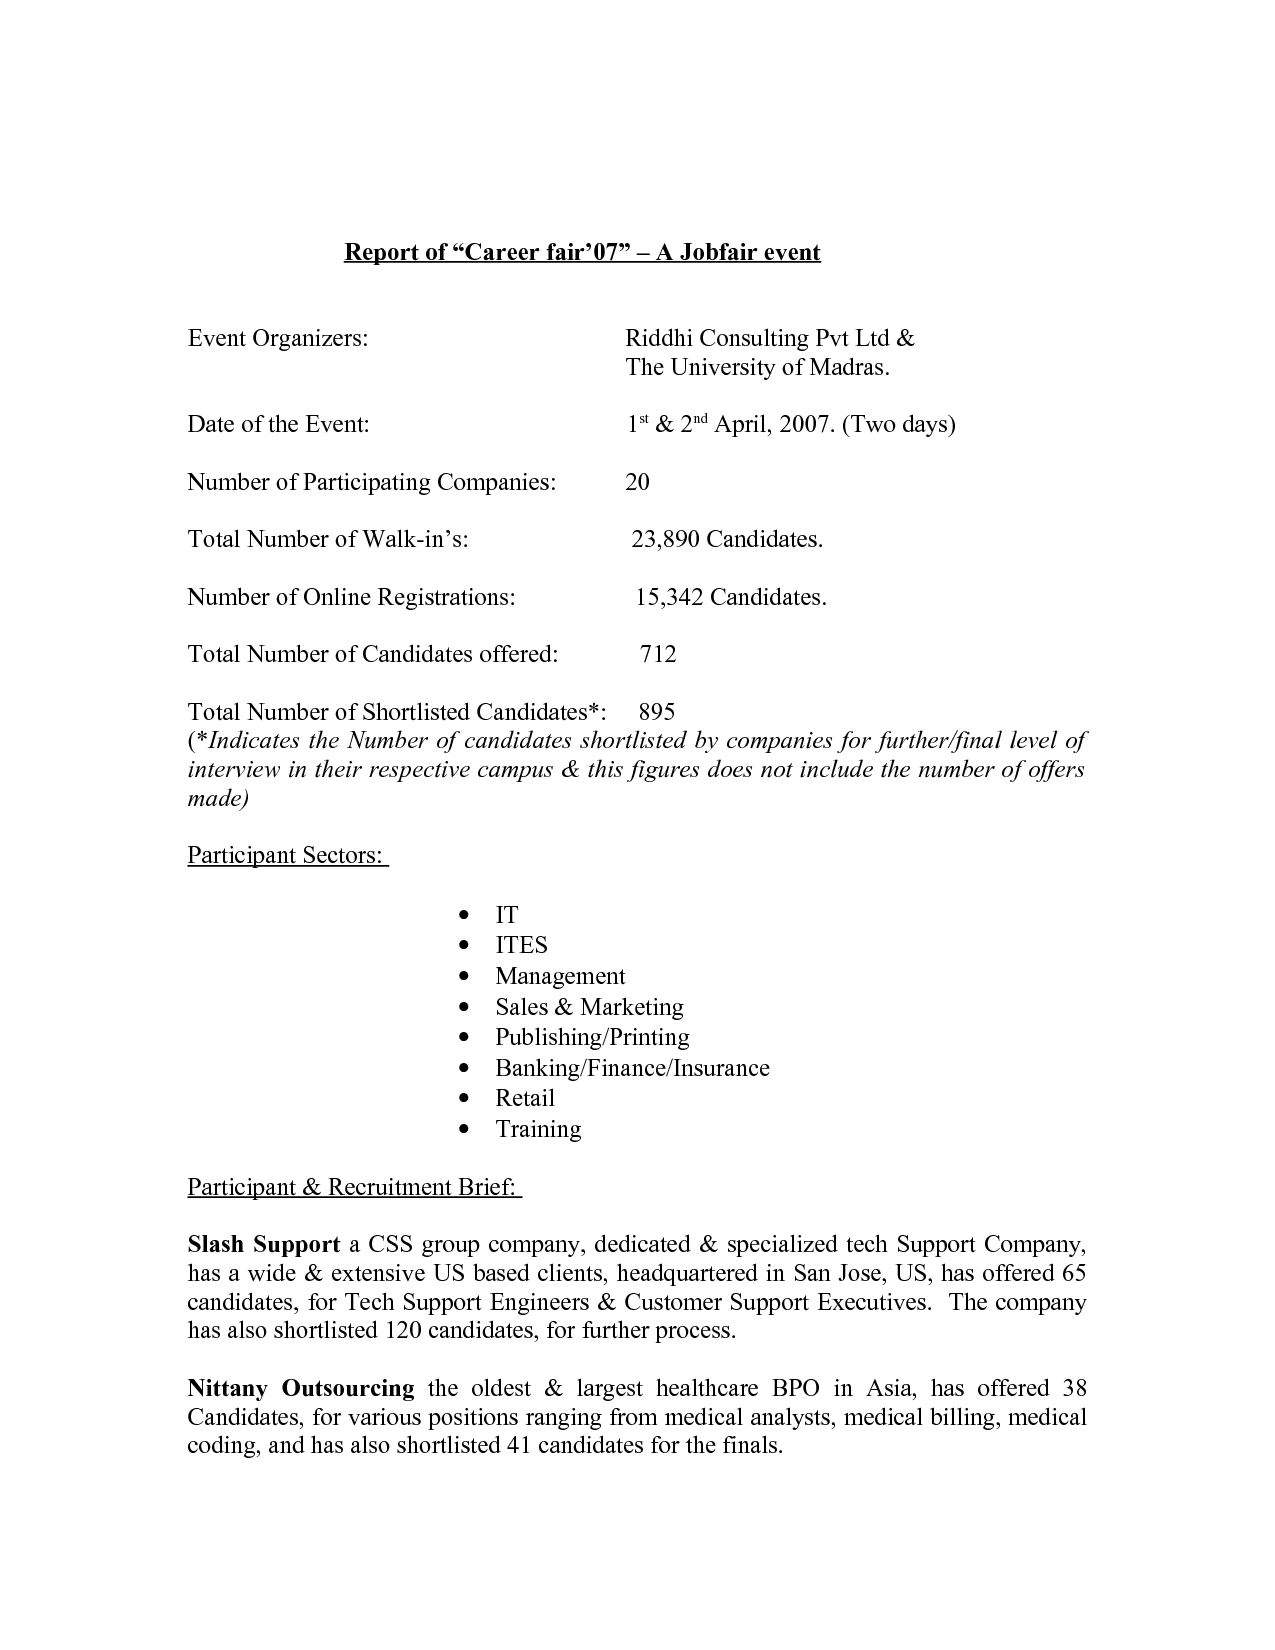 Resume Format For Freshers Free Download Resume Format For Freshers Free  Download, Resume Format For  Resumes Free Download